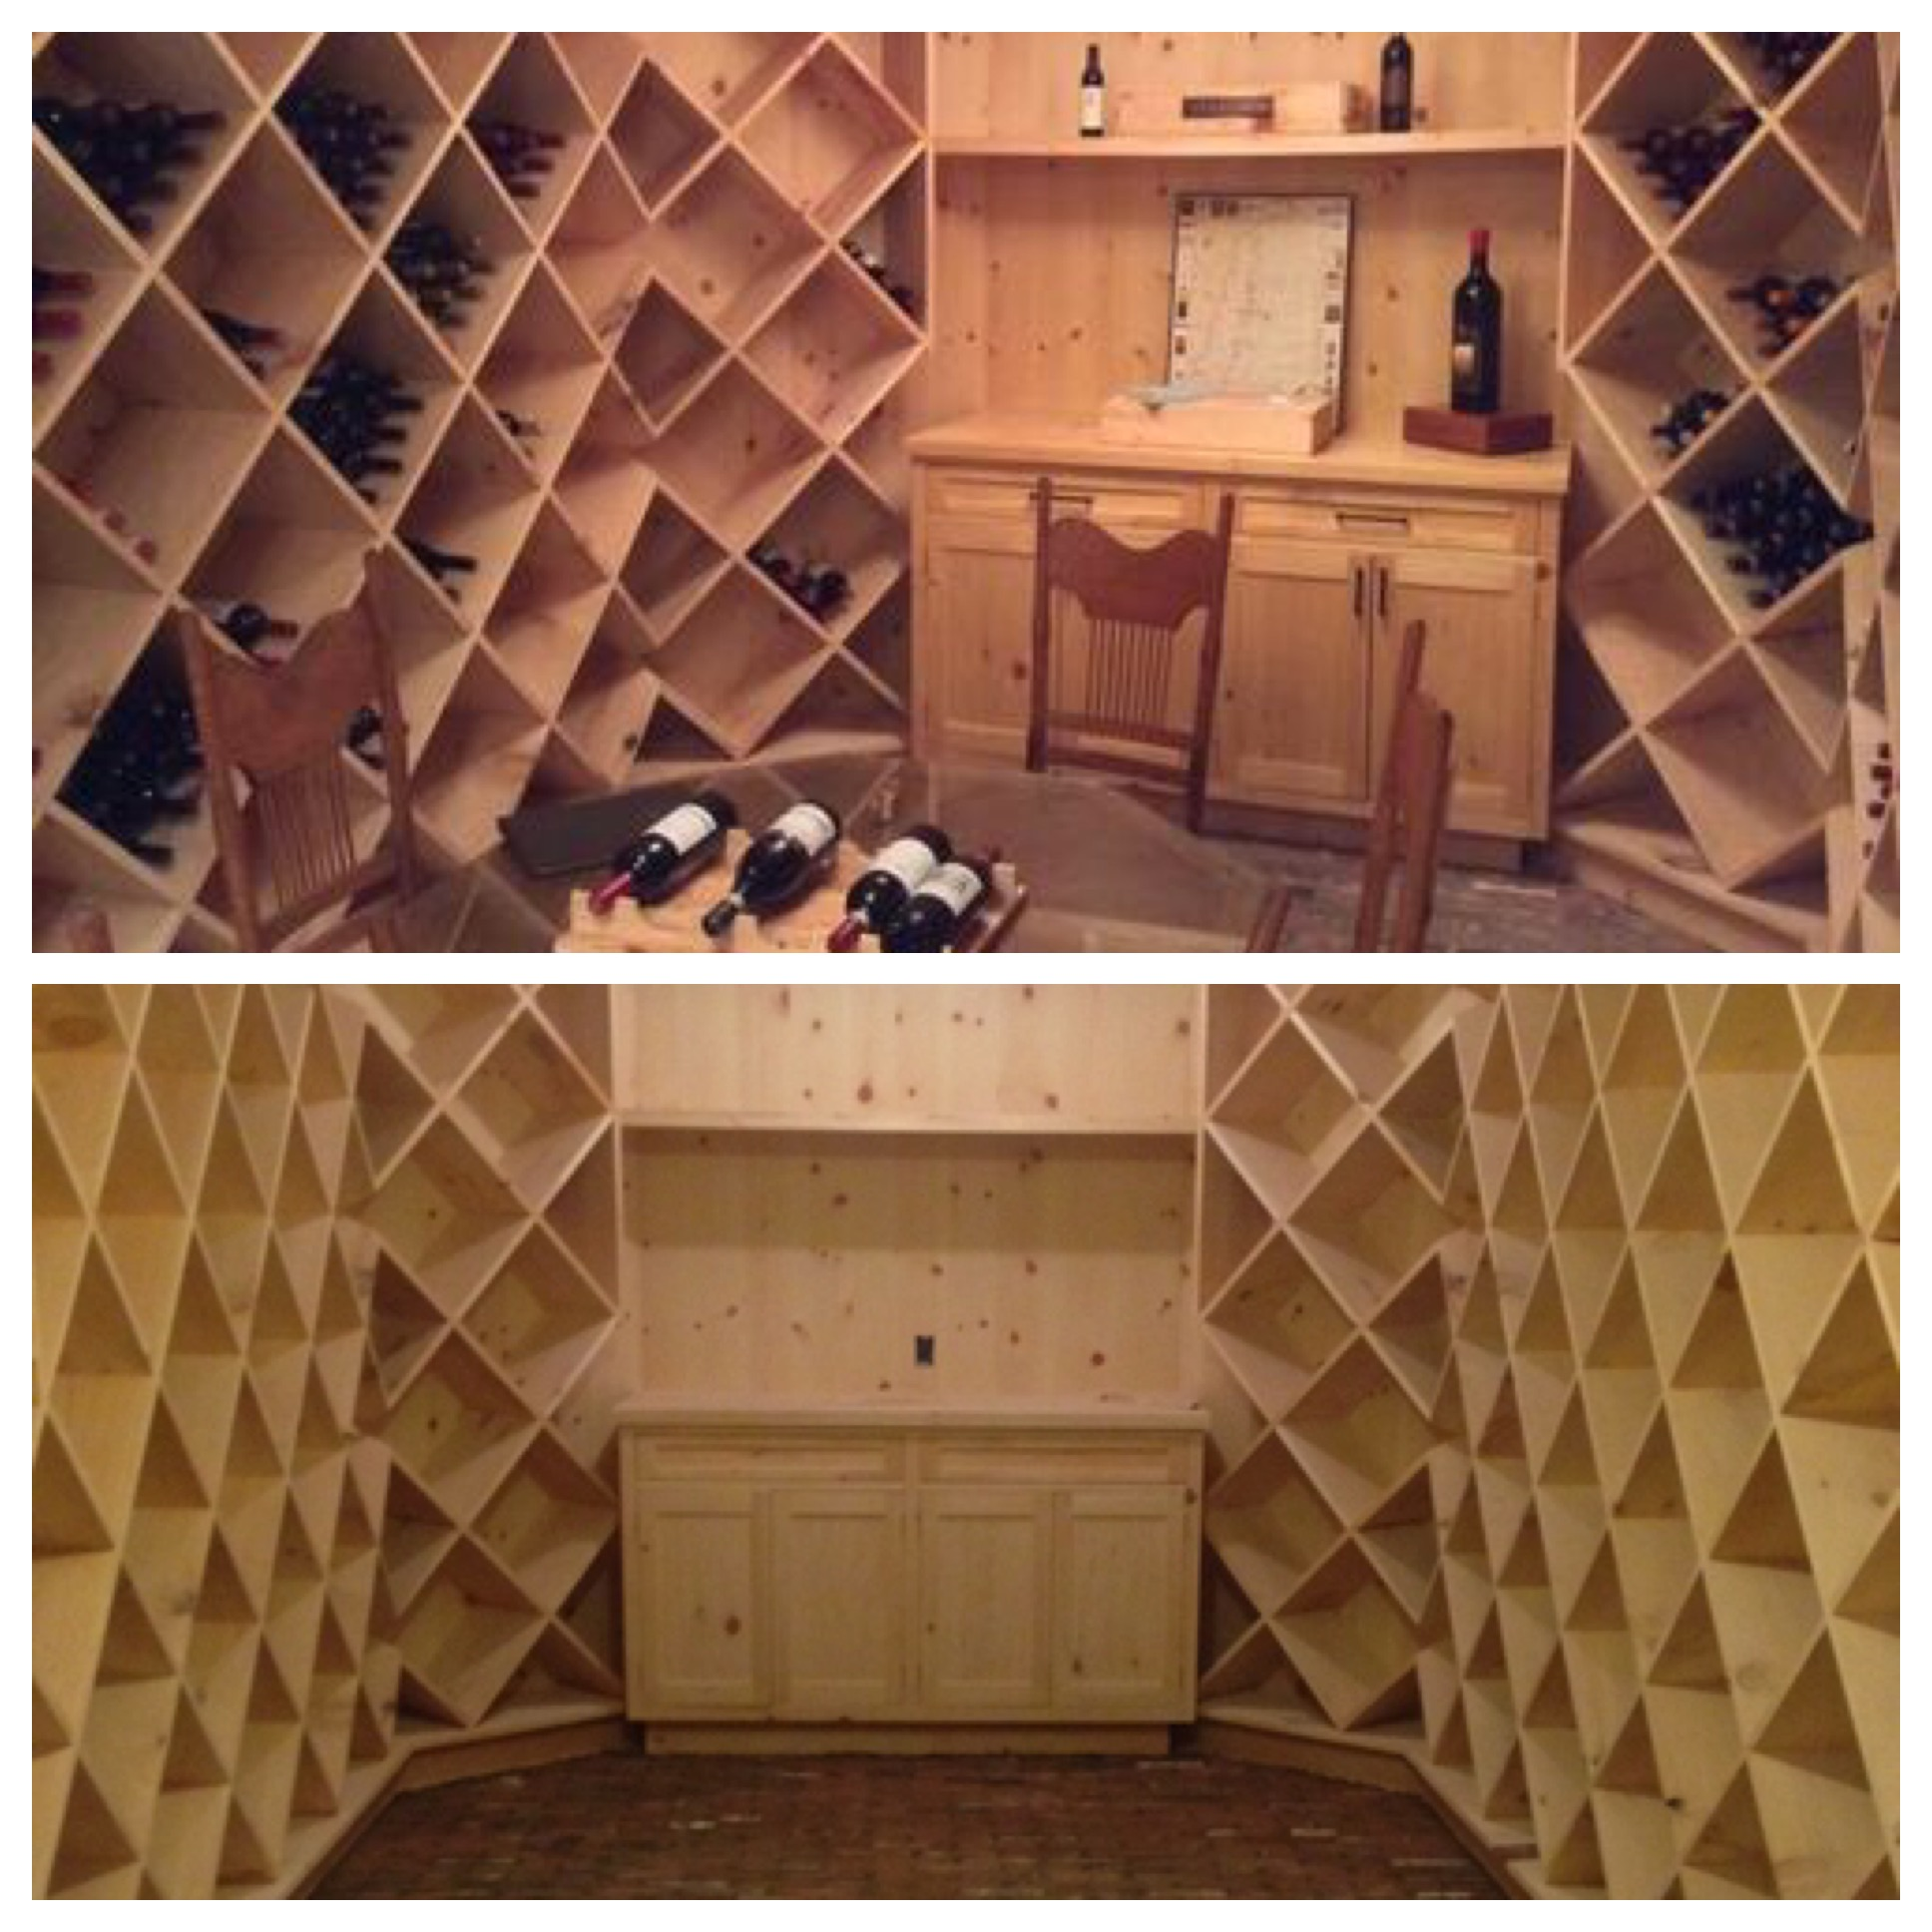 2000 bottle wine cellar before and after